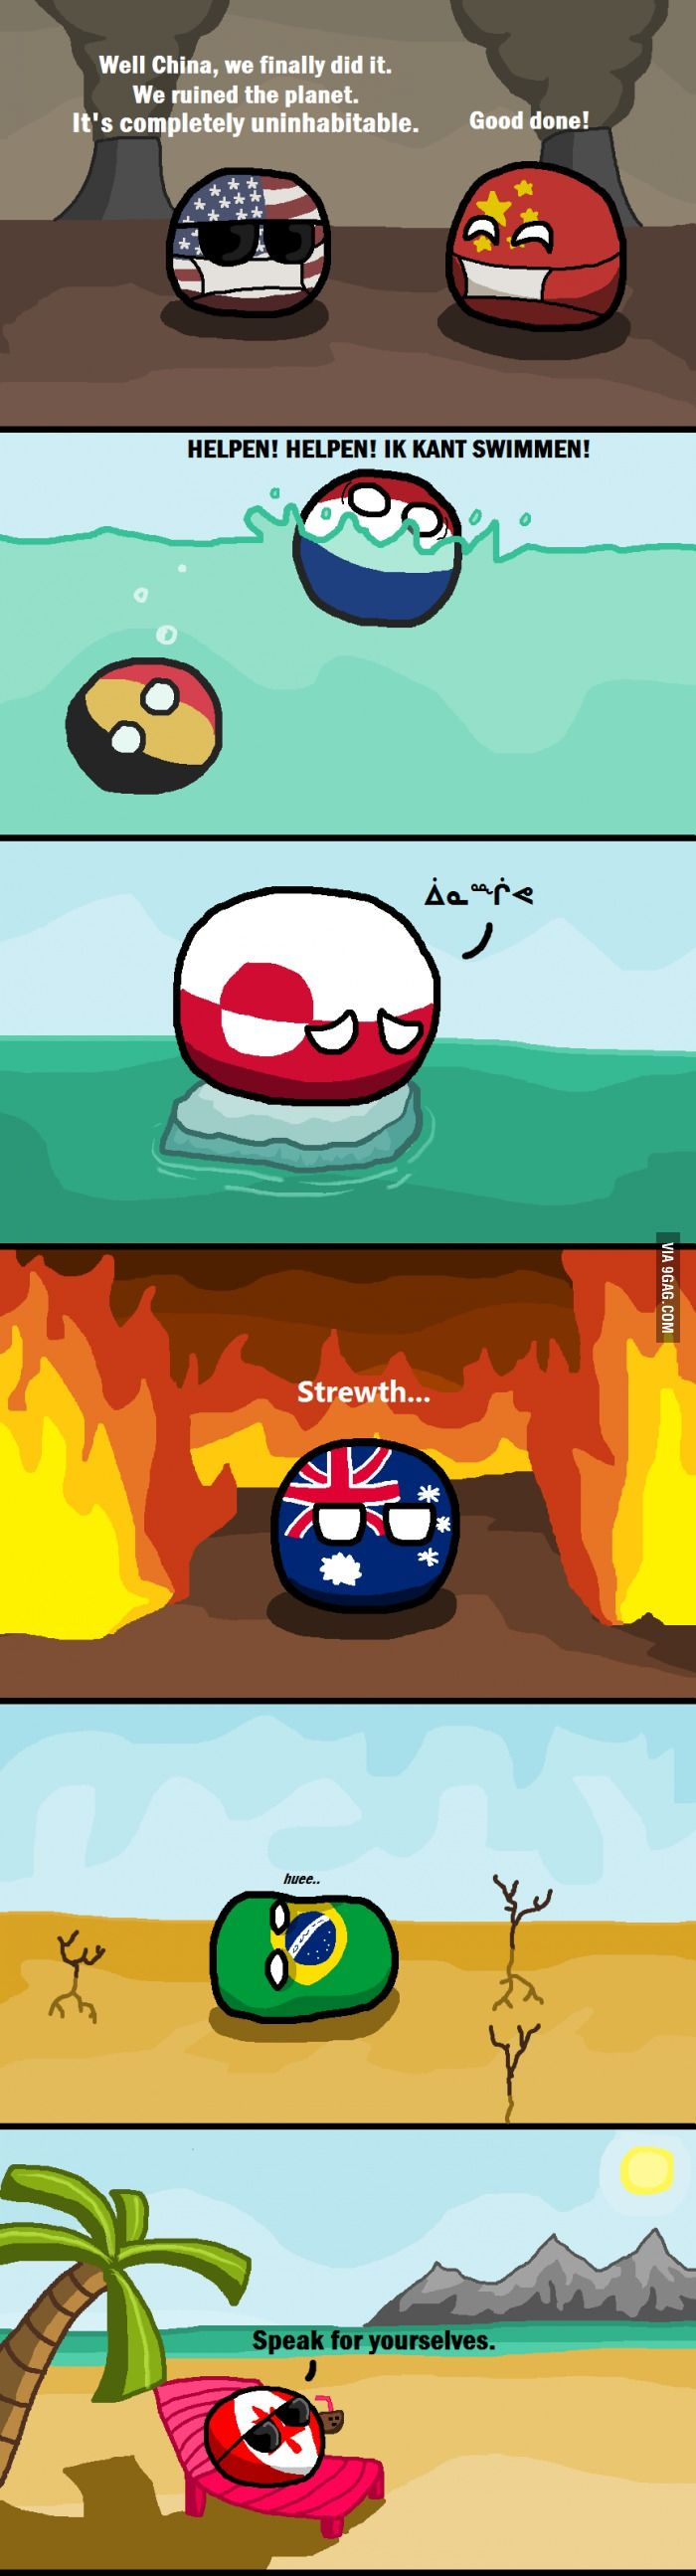 """not so bad"" Global warming (US, China, Netherlands, Belgium, Greenland, Australia, Brazil, Canada)   #polandball #countryball #flagball<-- Let me tell you about Hetalia..."